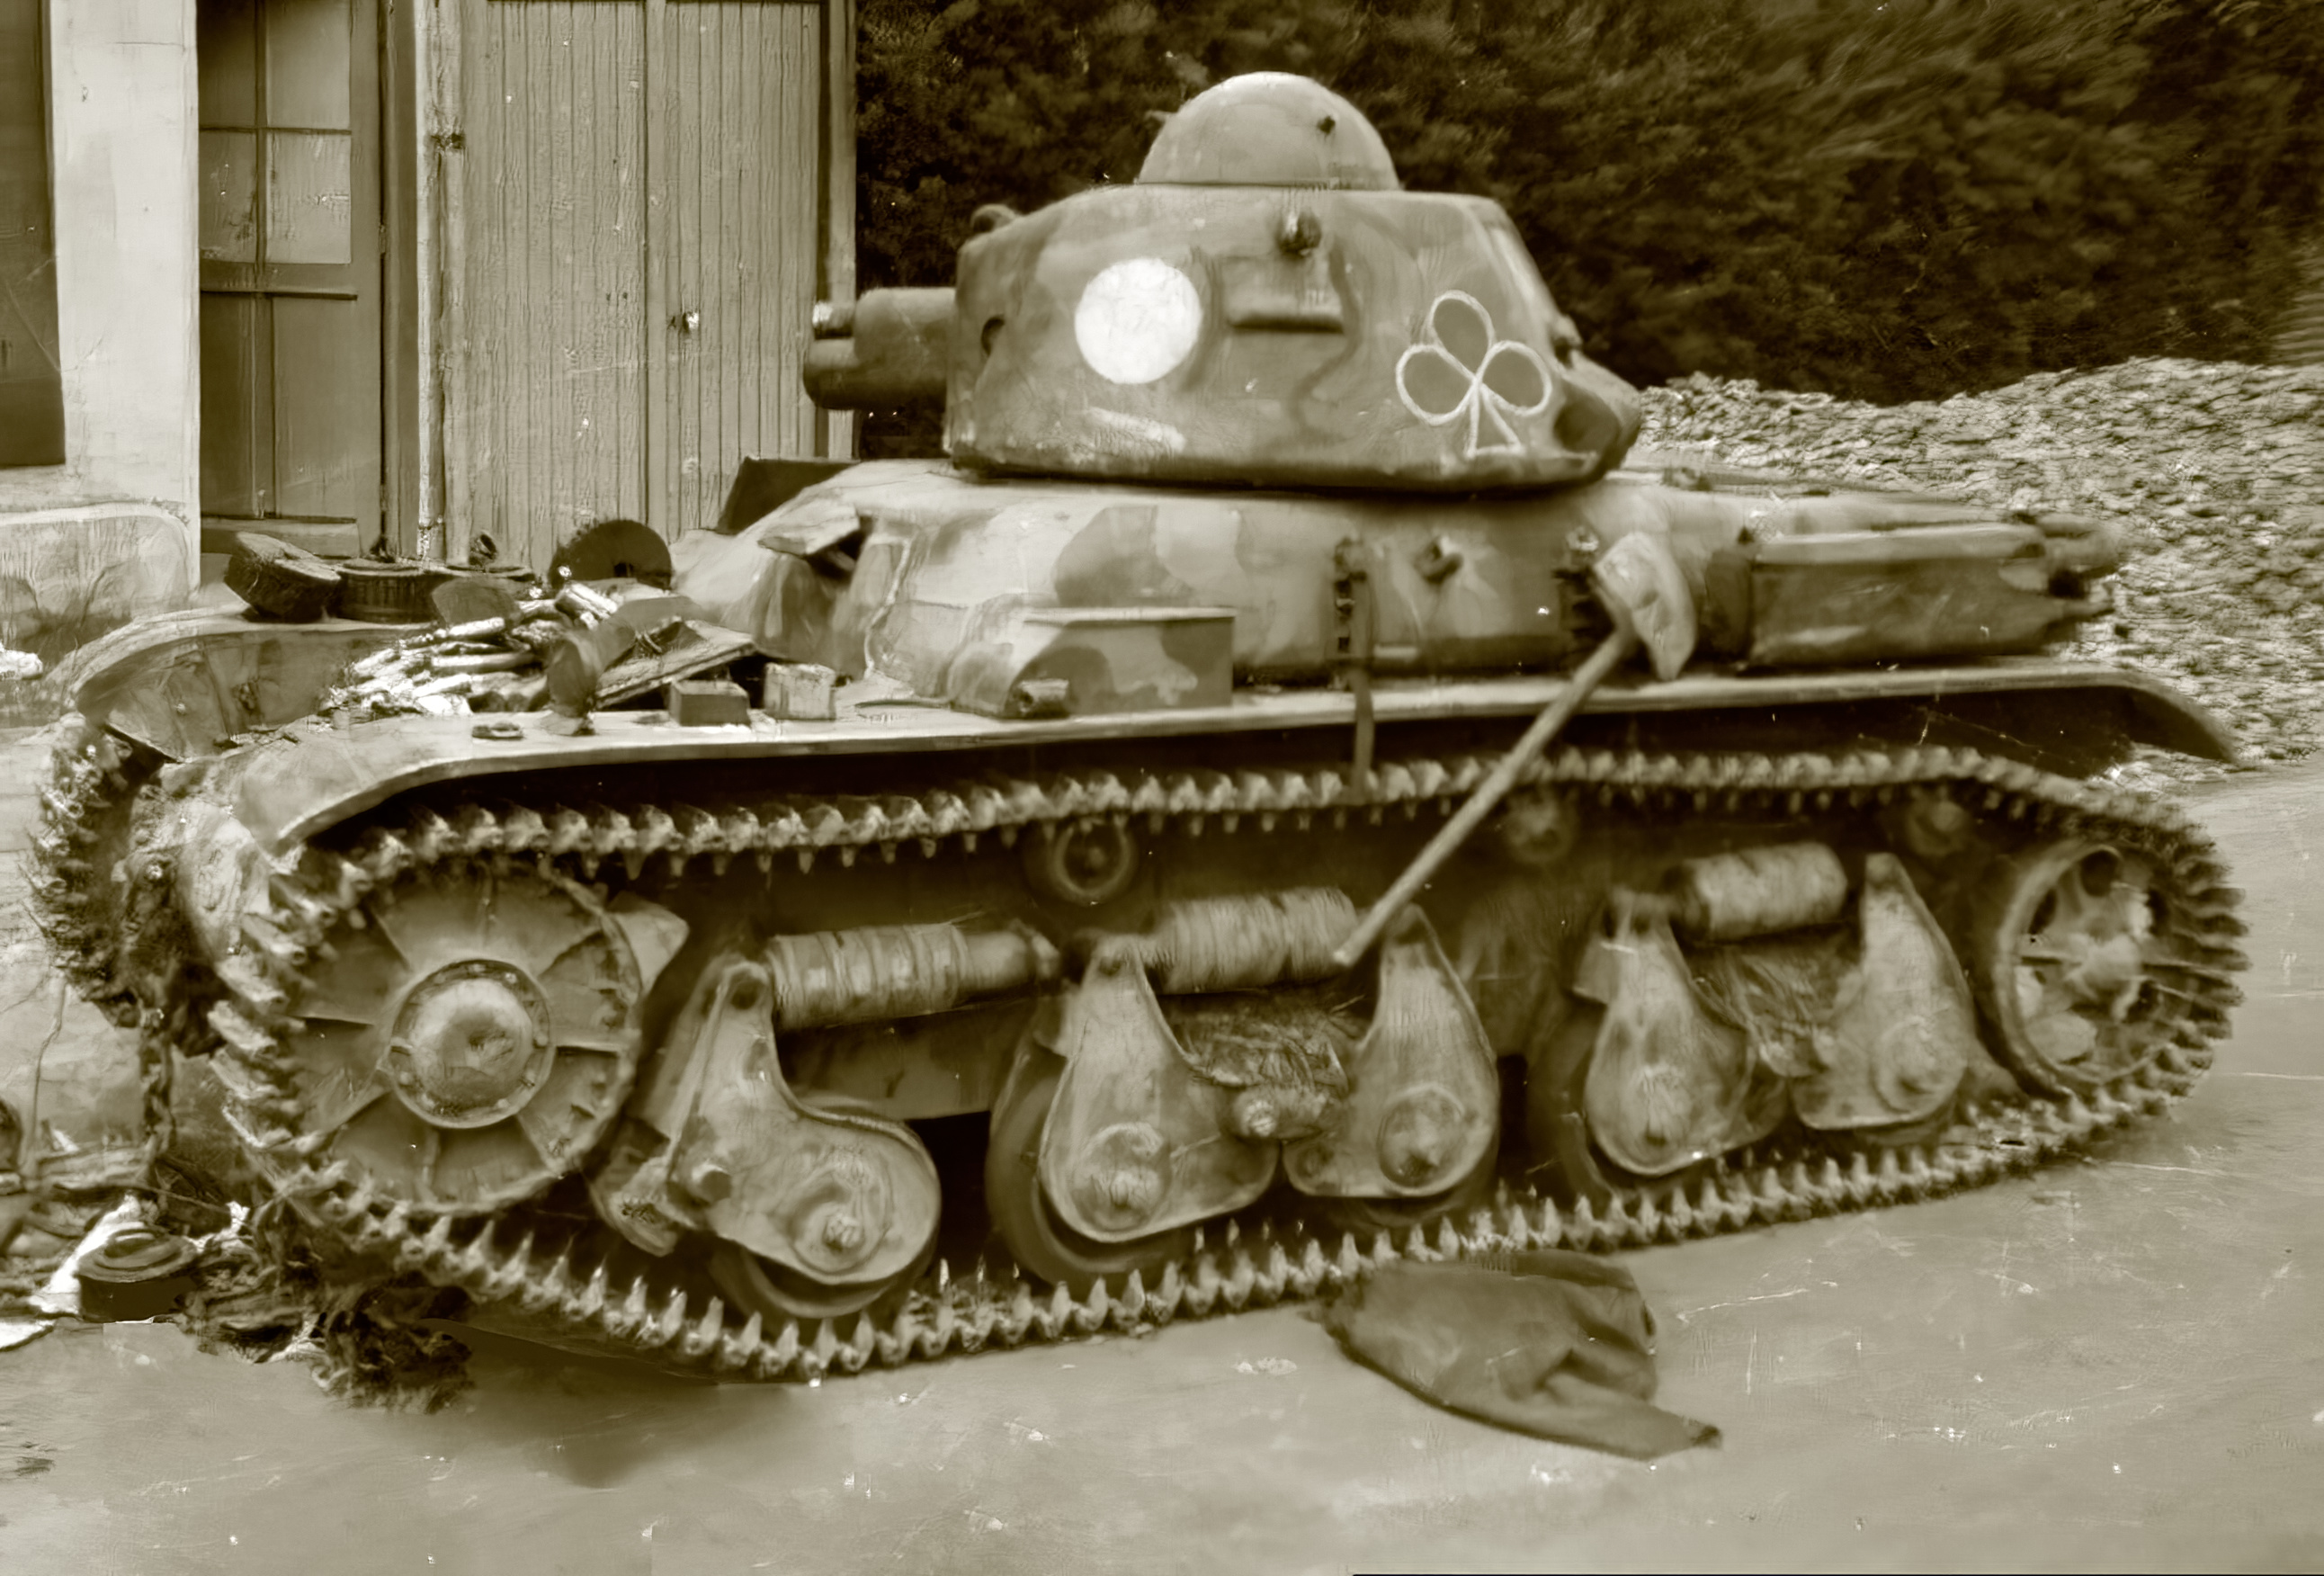 French Army Renault R35 support tank abandoned battle of France 1940 ebay 06